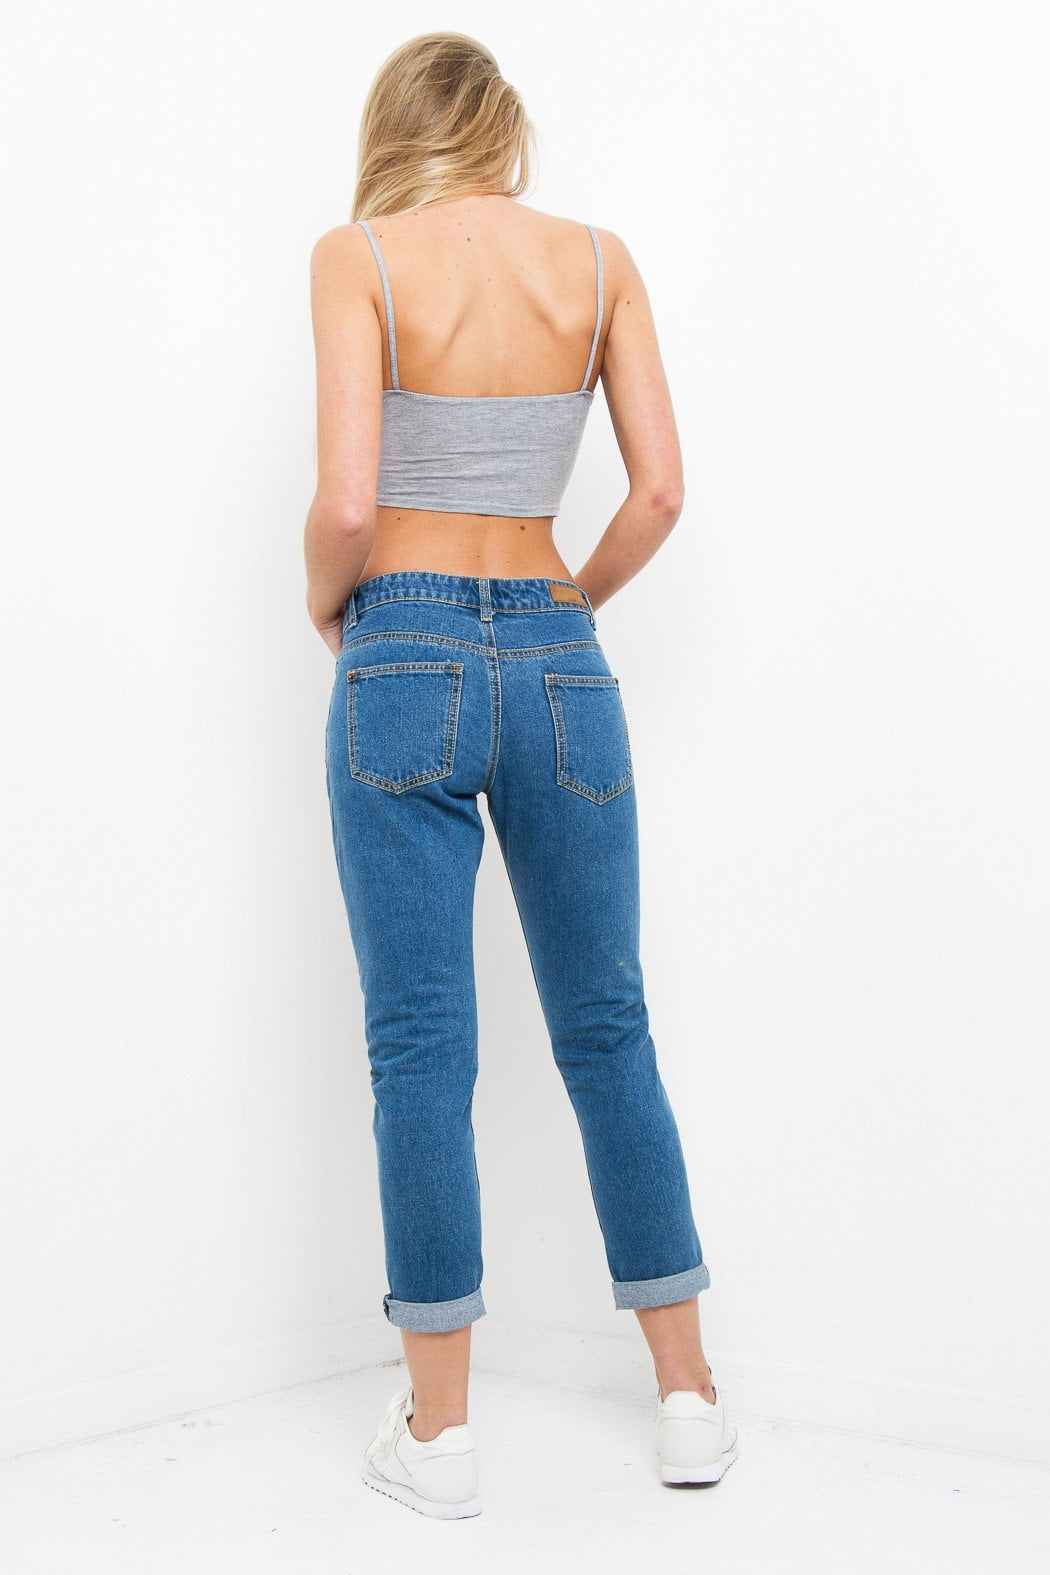 Midori Boyfriend Jean With Red Rose Embroidery In Stonewash - Liquor N Poker  Liquor N Poker